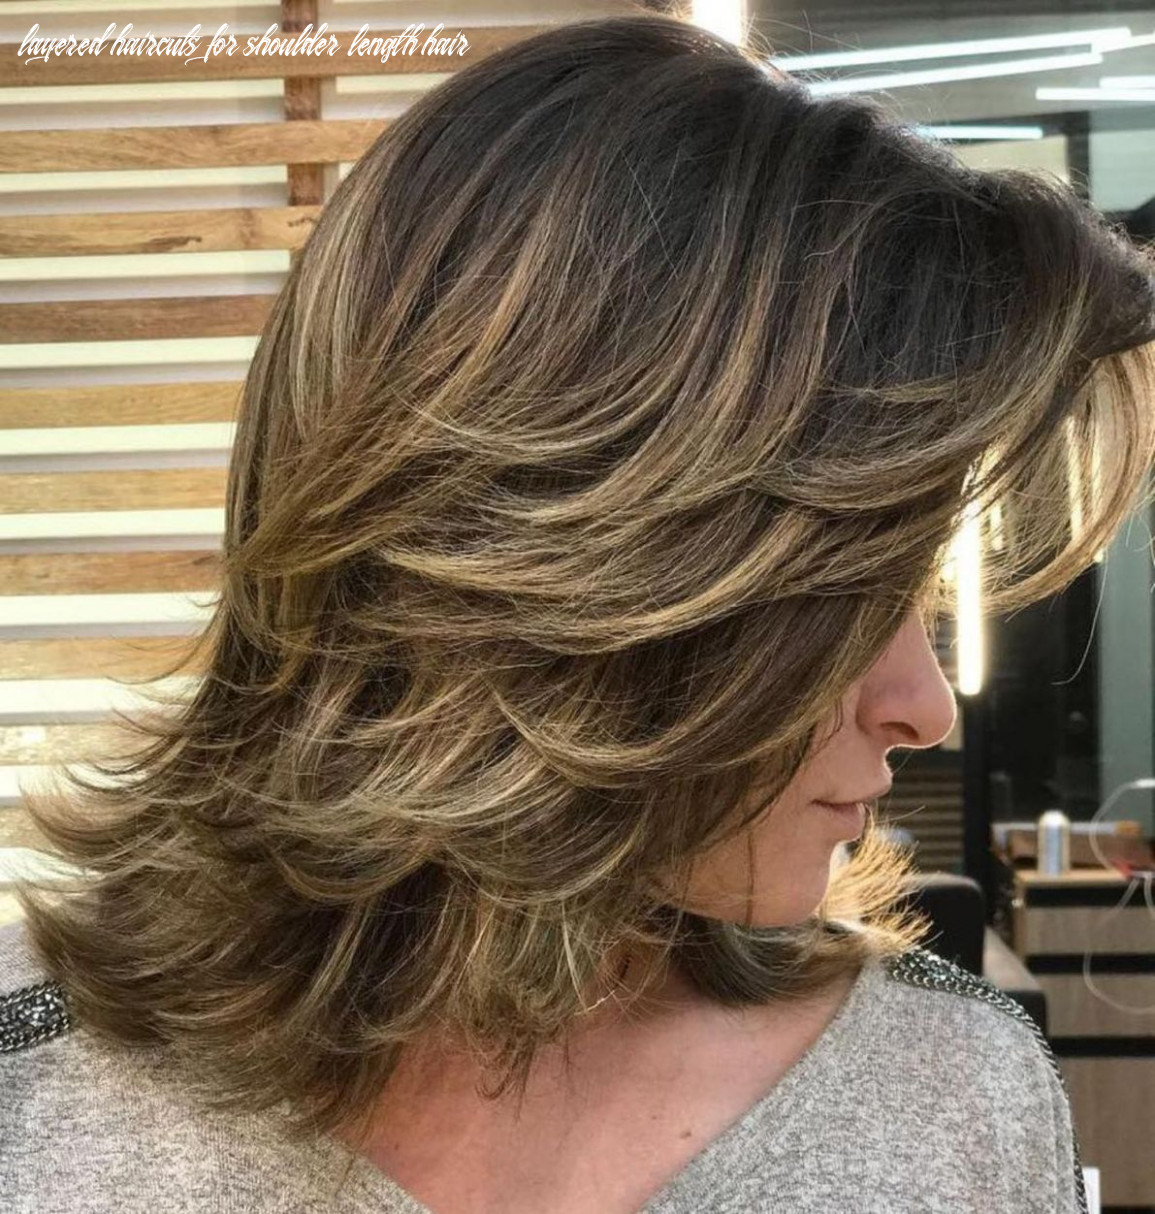 Pin on hair styles layered haircuts for shoulder length hair